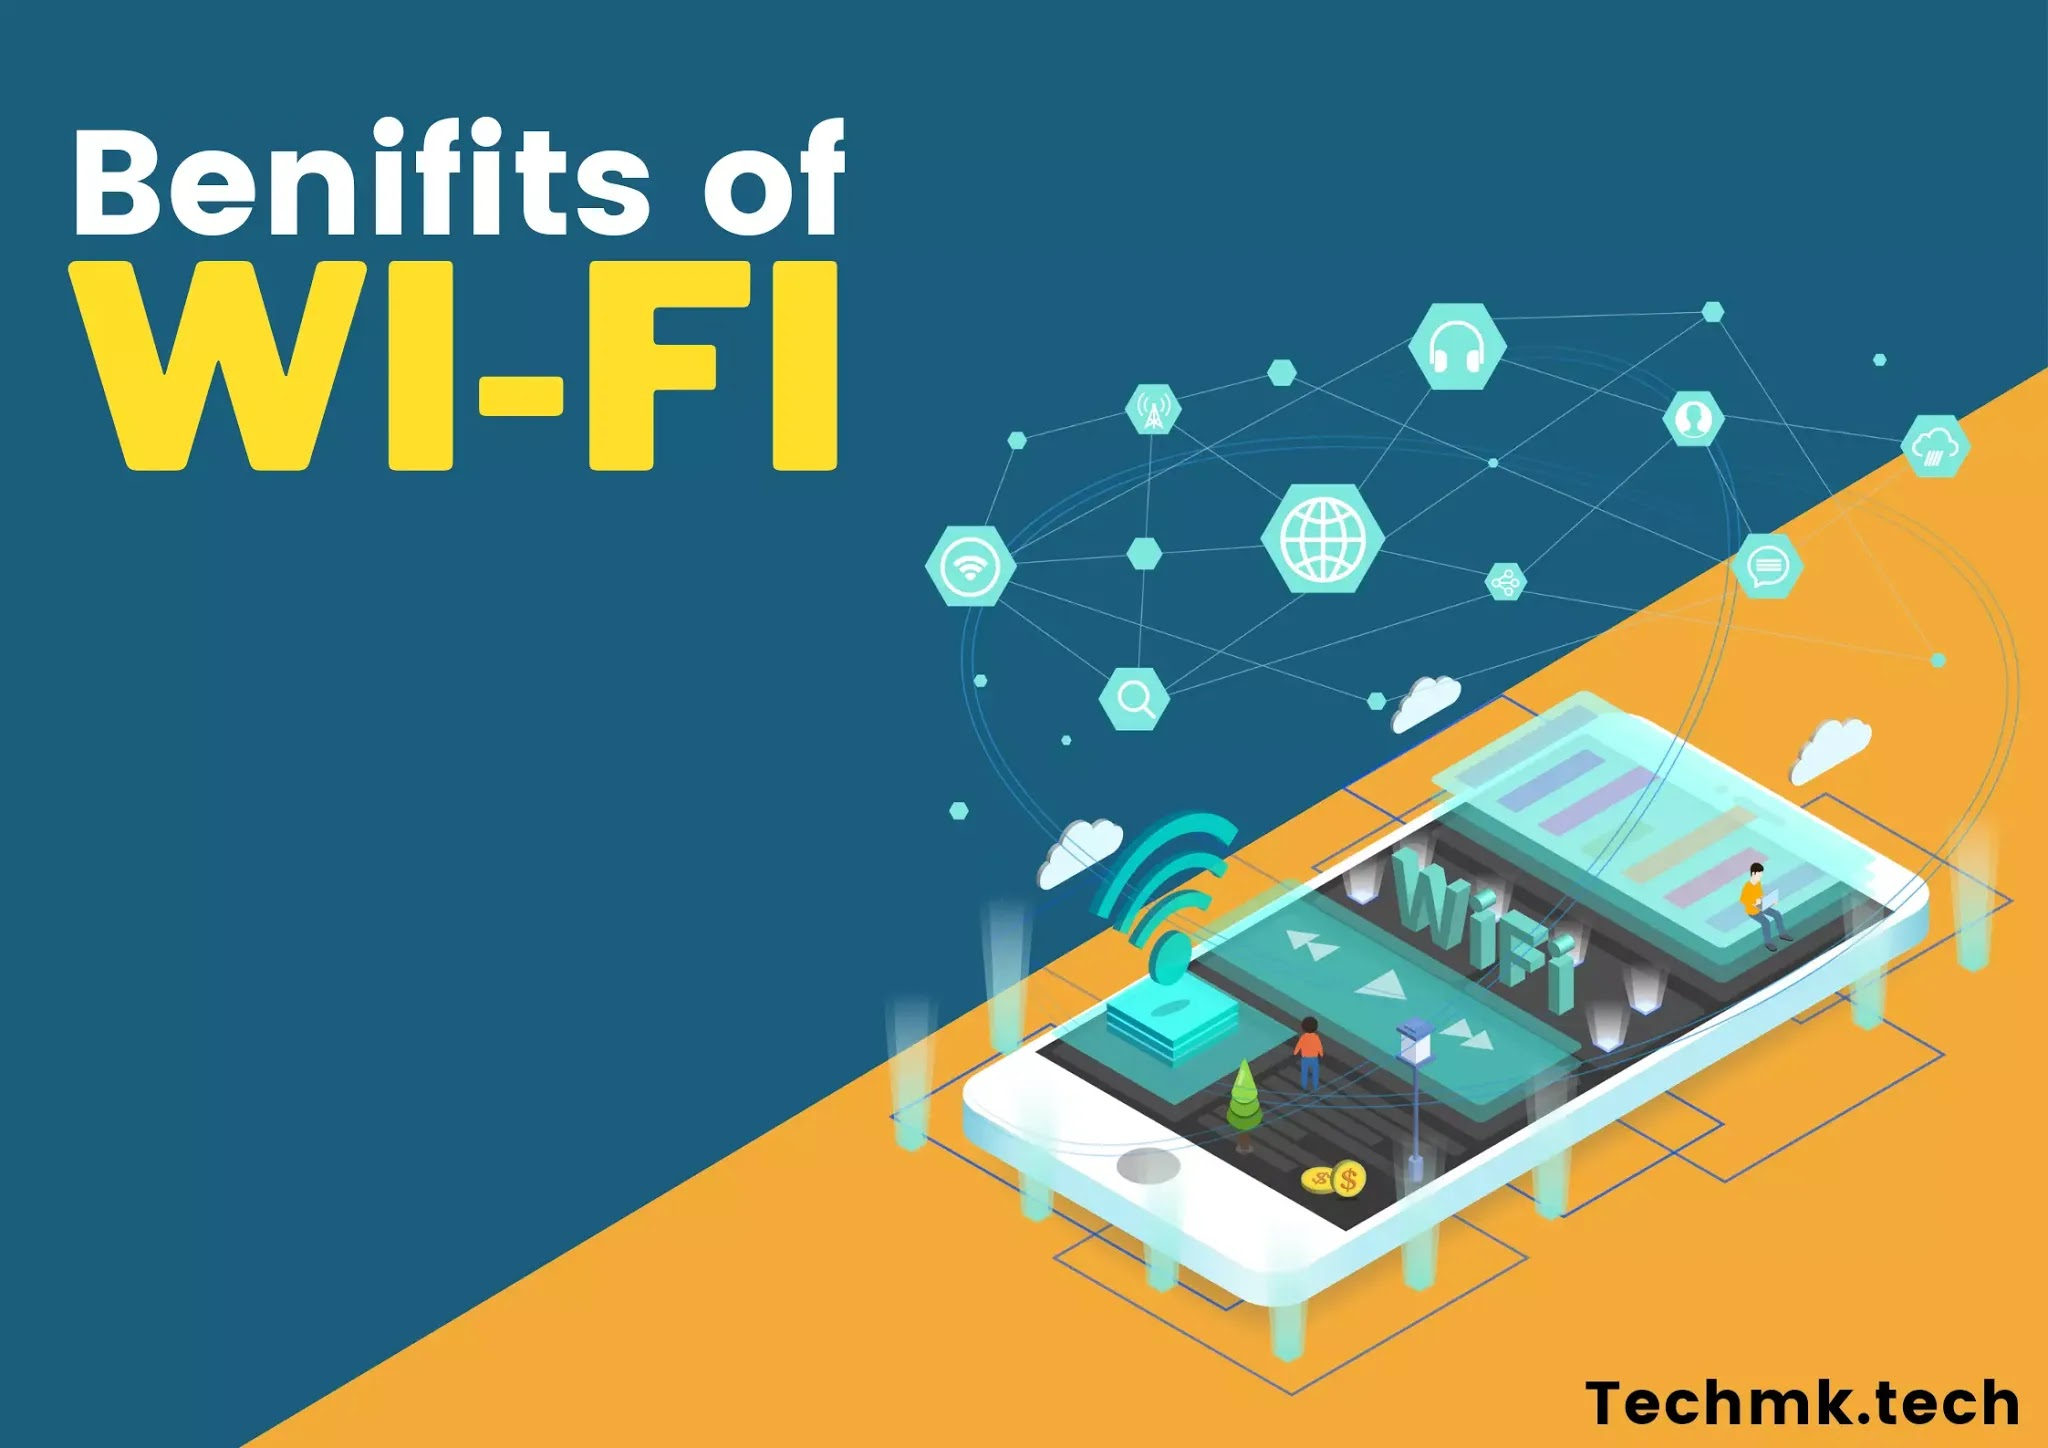 Benifits of wifi, system, data, phone, search, computer, address, range, sharing, definition, access, लोगों, technology, connection, diagram, Hotspot, network, Bluetooth,